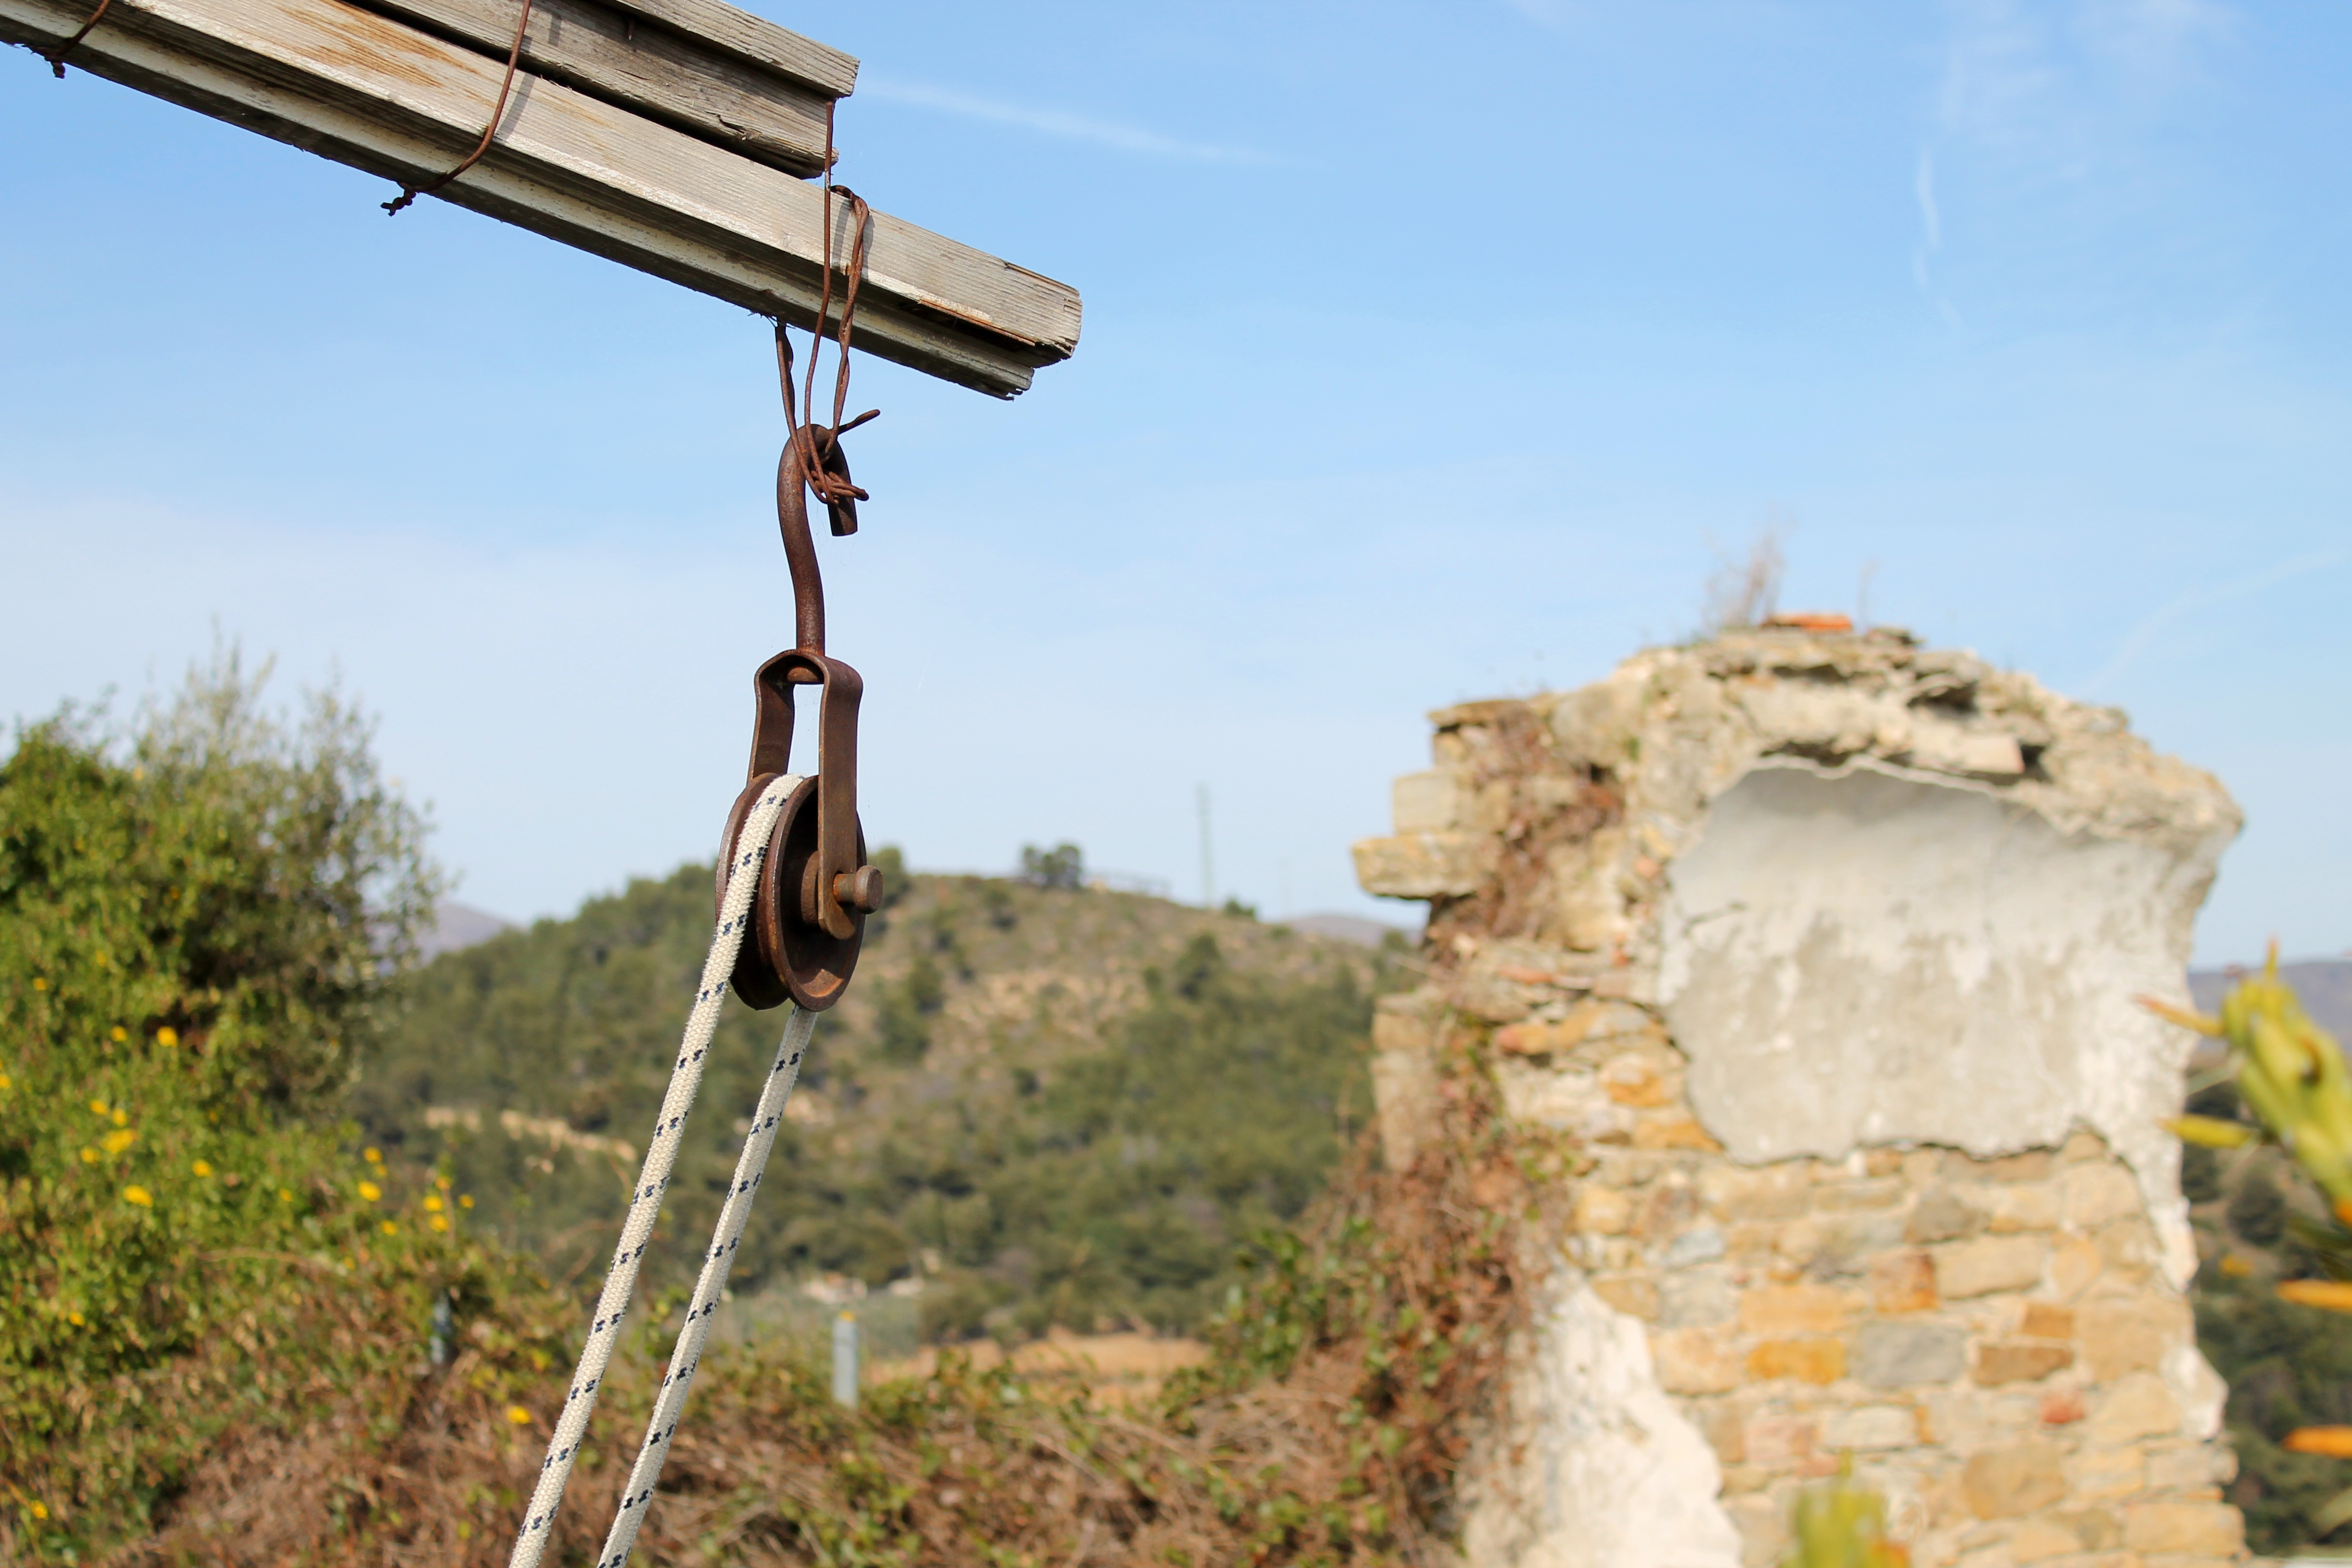 Beautiful Examples Of Pulleys In Real Life Pulley Bussana Vecchiajpg Intended Design Decorating